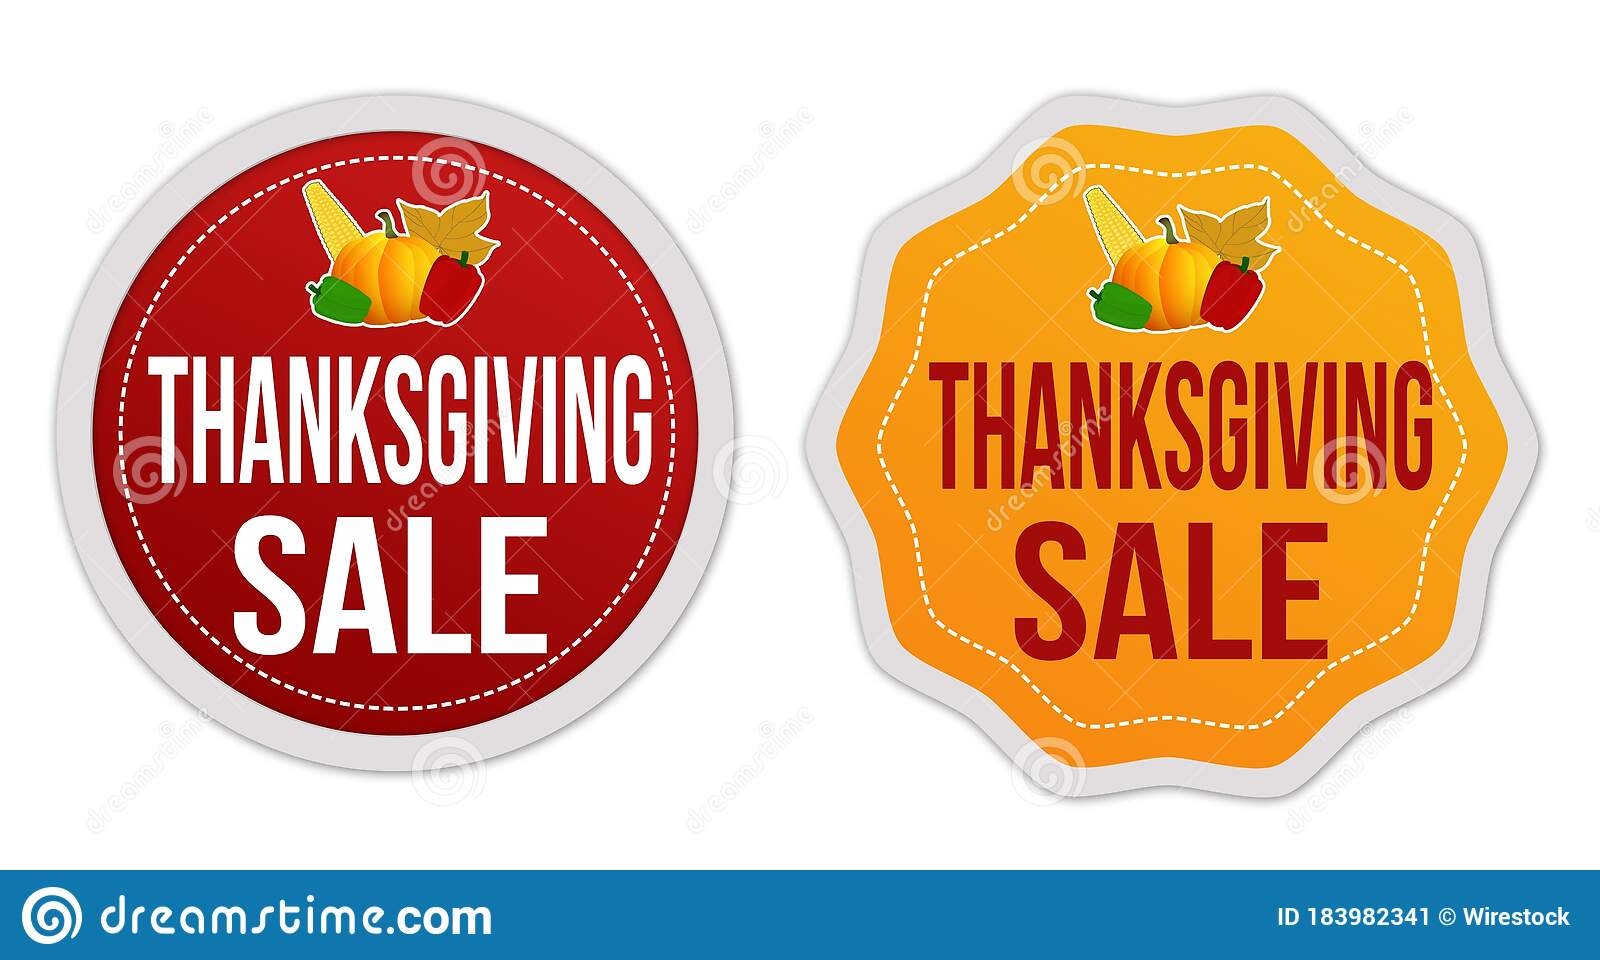 Illustration Of Red And Orange Signs Saying Thanksgiving Sale Isolated On A White Background Stock Illustration Illustration Of Text Banner 183982341